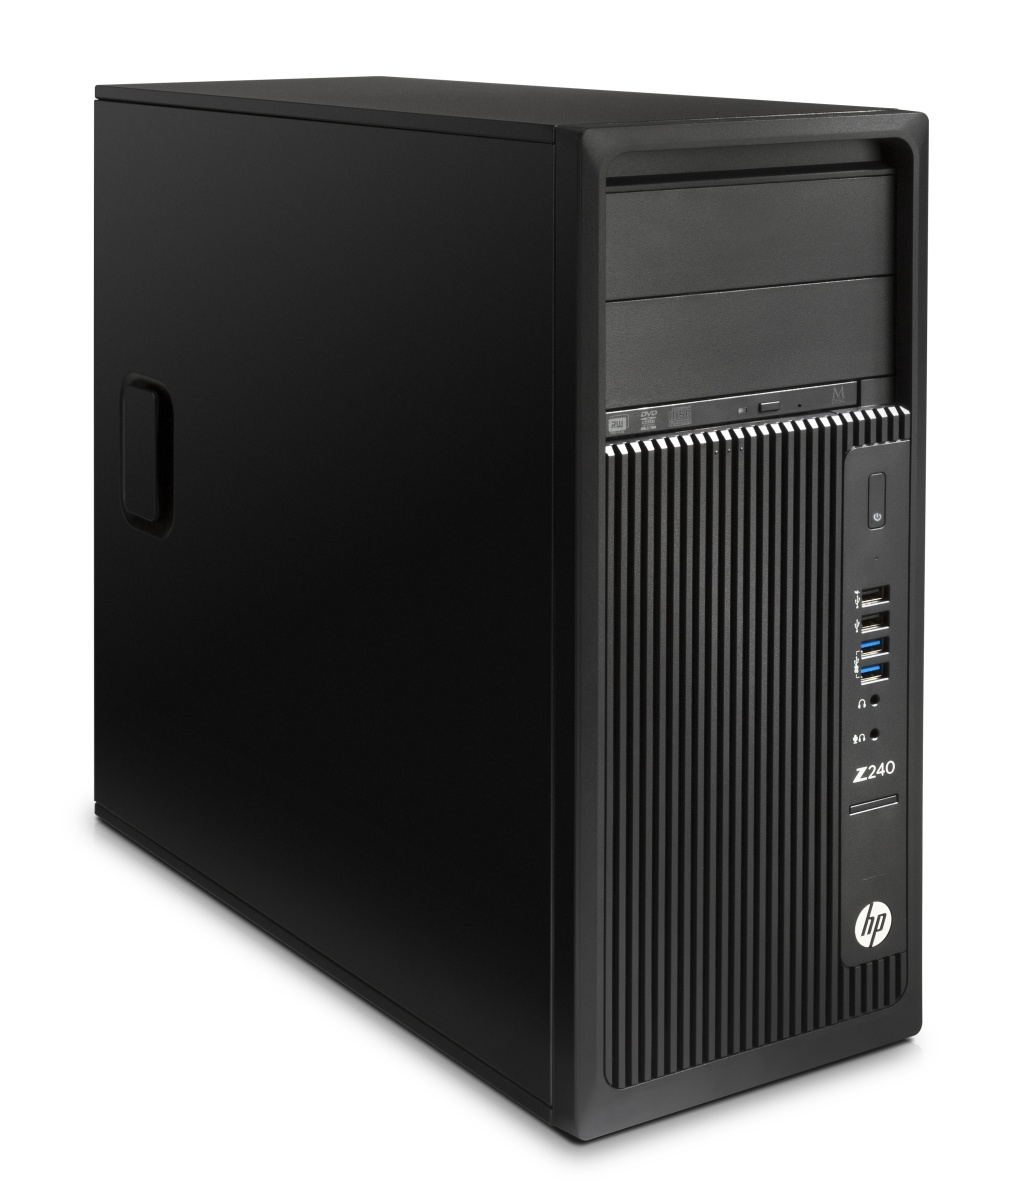 "HP Z240 TWR Intel i5-6500 3.2GHz/16GB DDR4-2133 nECC (2x8GB)/256GB SSD 2.5"" /Intel HD GFX 530 /Linux"